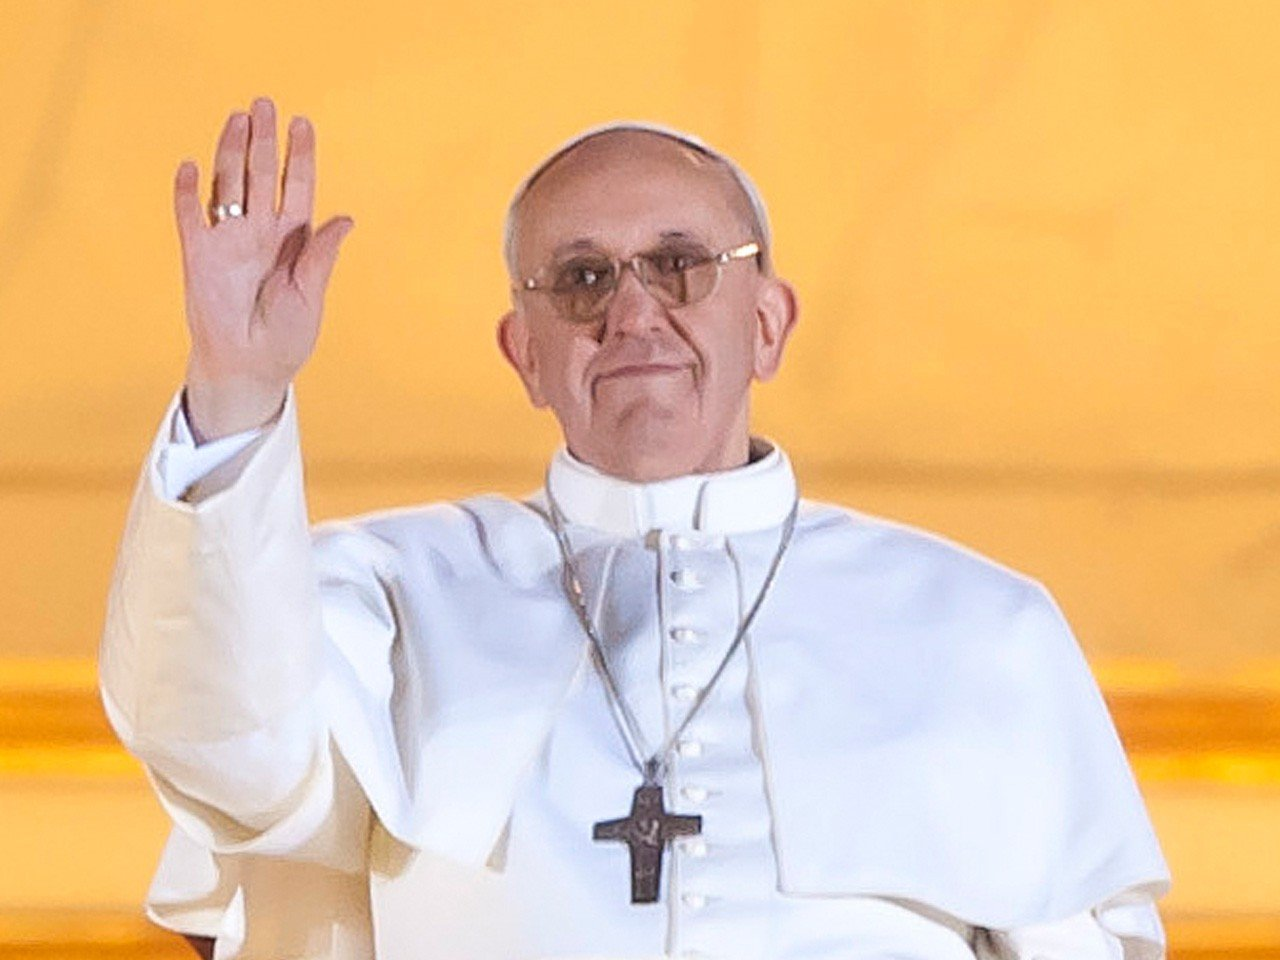 The Pope signaled that he wants a church whose first priority is the poor and disadvantaged.